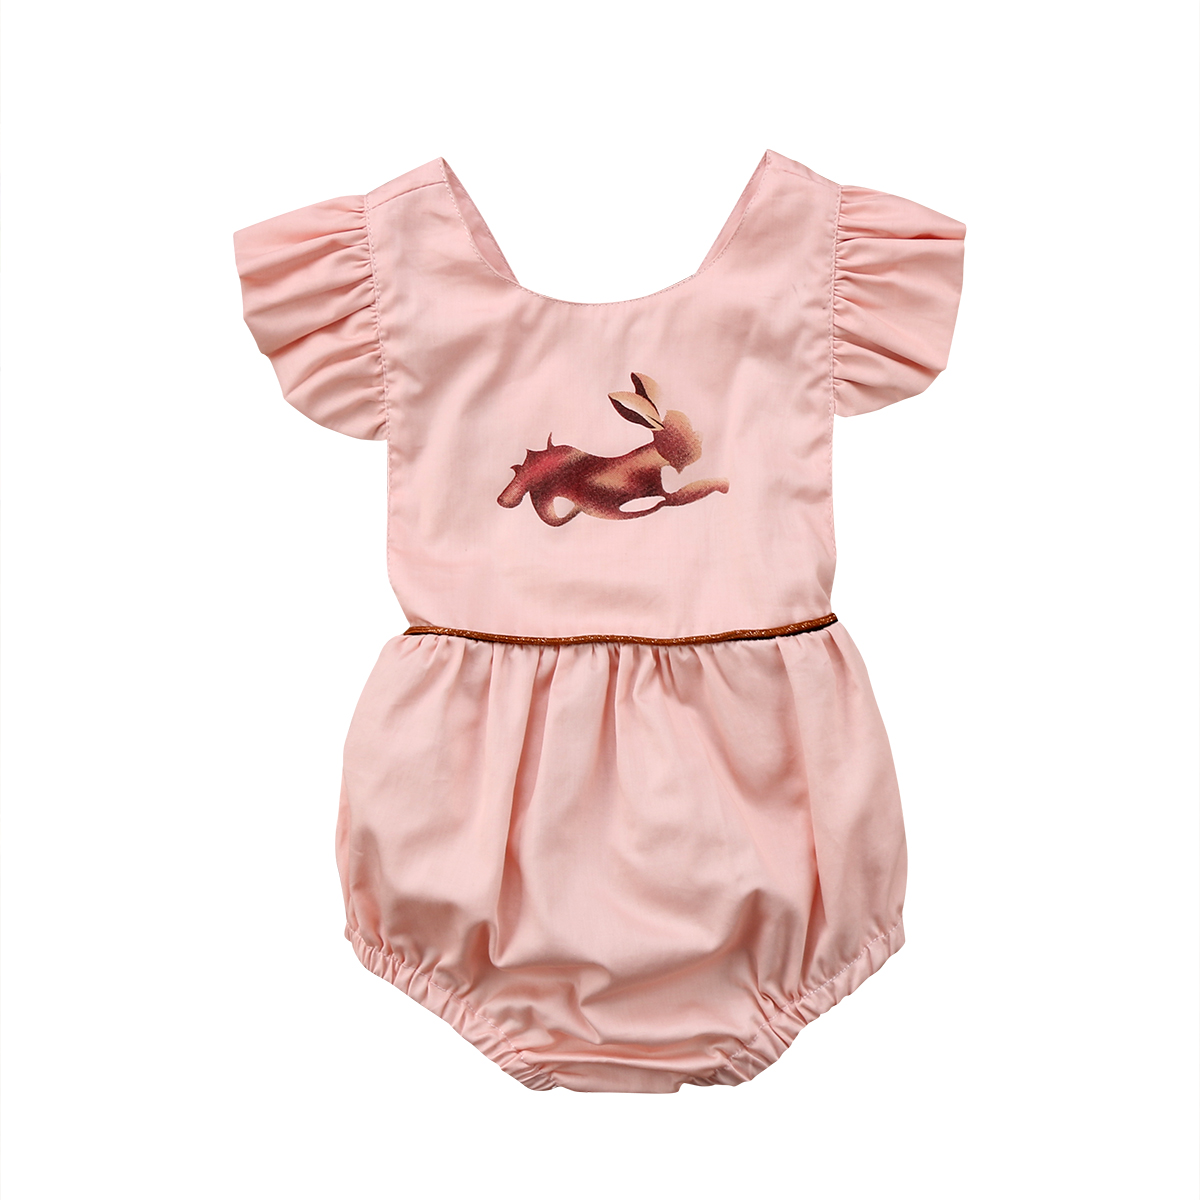 9bd23ff08a45 Infant Baby Girls Bunny Romper 2018 Ruffles Jumpsuit Newborn Baby Girls  Cotton Sunsuit Easter Outfits Children Clothes 0-24M